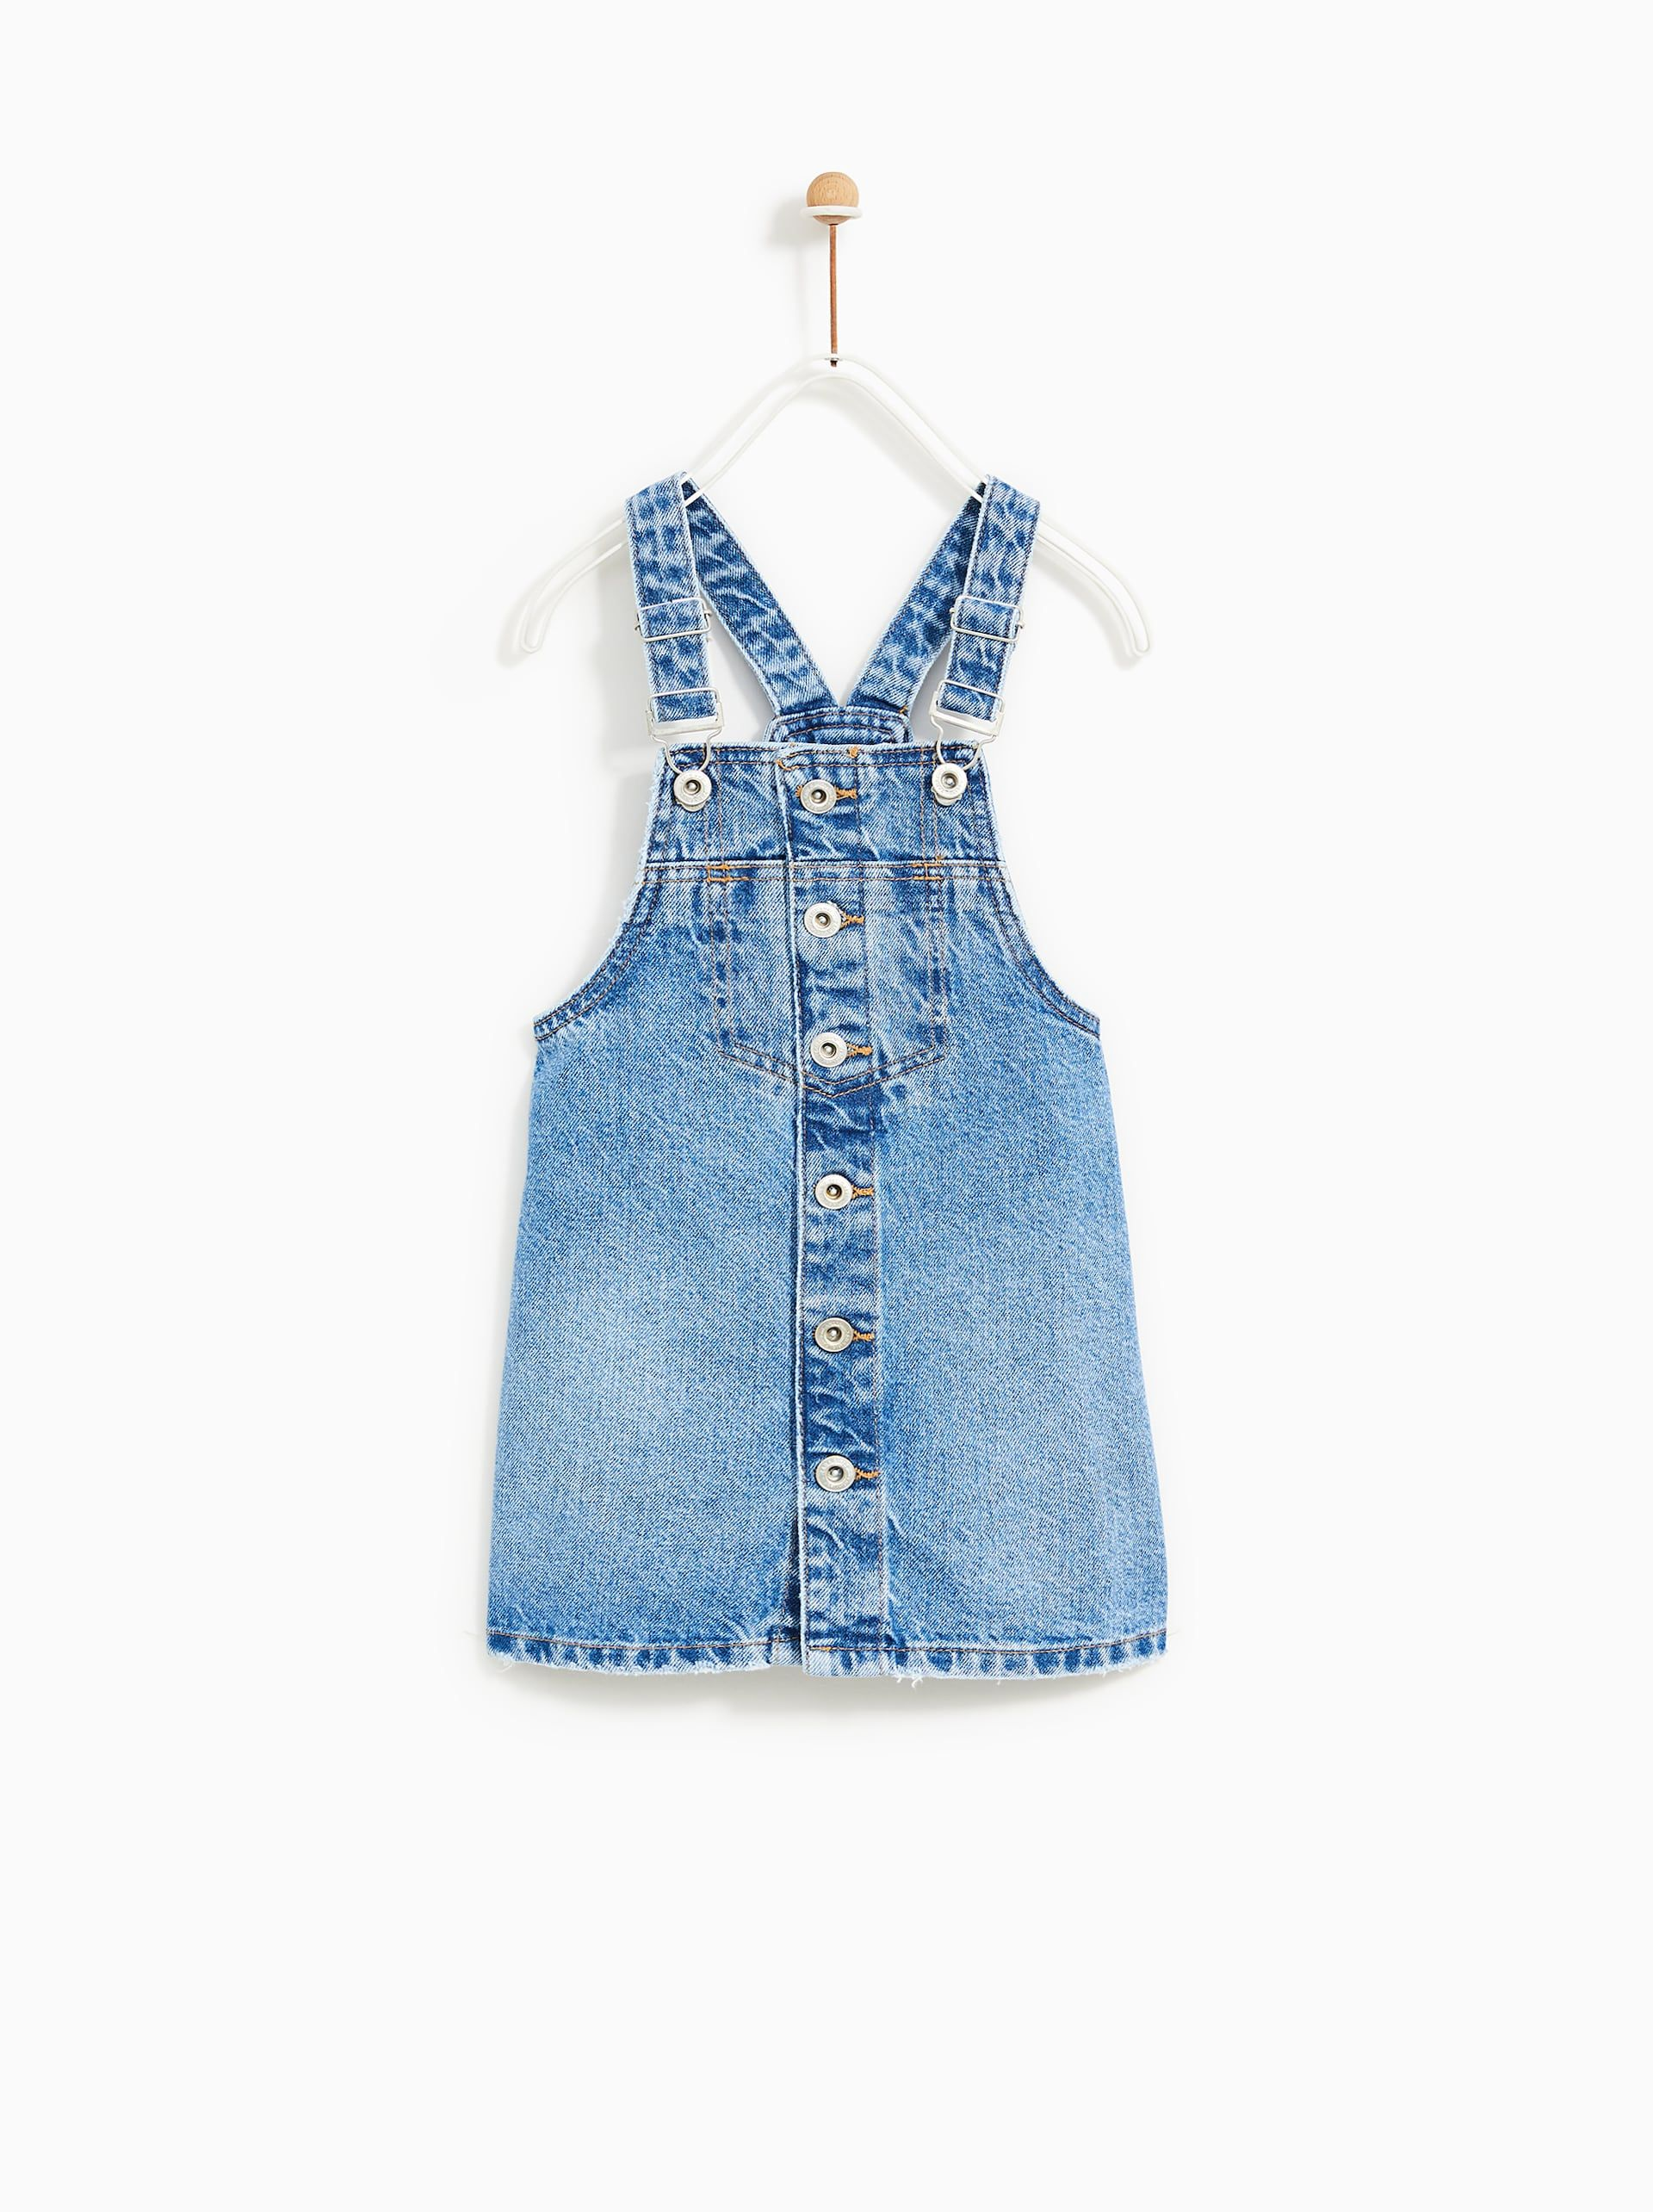 931d2f49 BUTTON-UP DENIM DUNGAREES from Zara | Dungarees and Pinaores - Girls ...